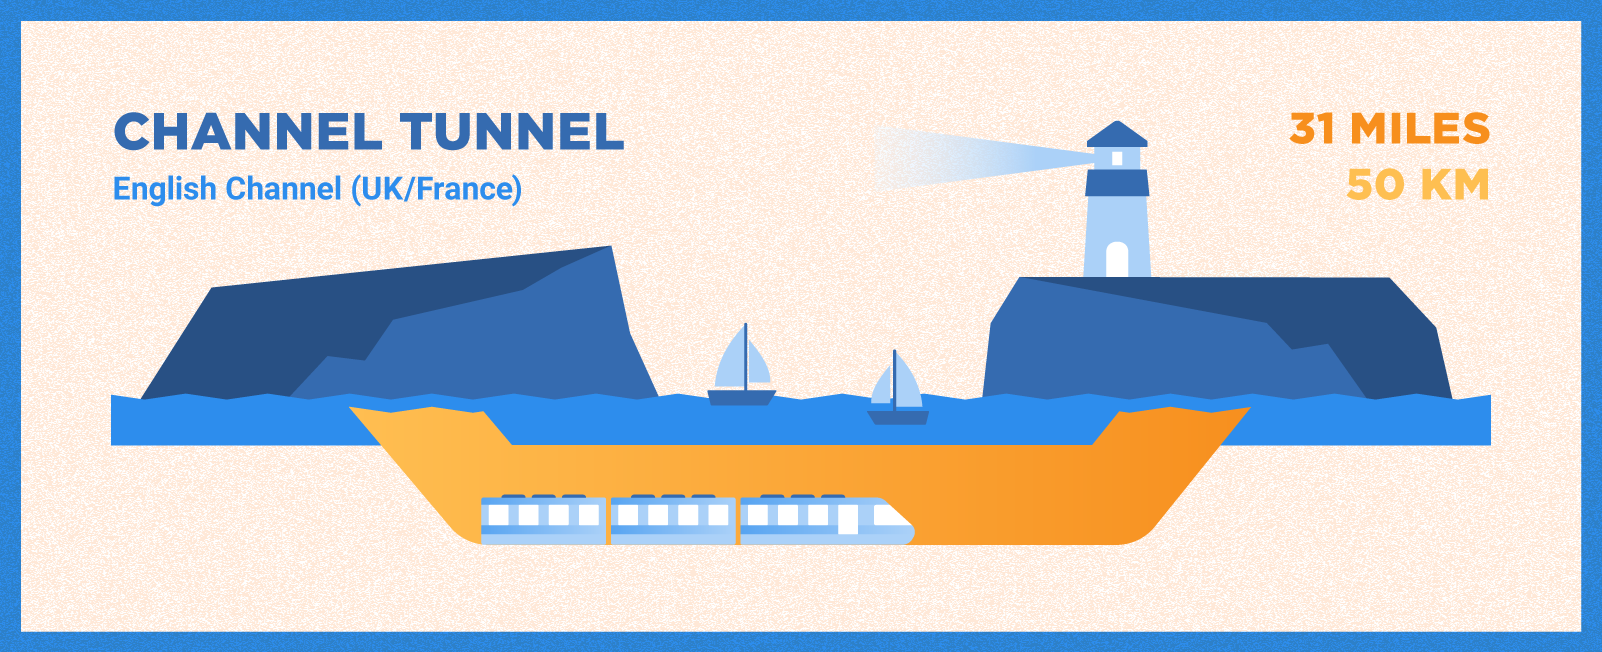 Channel Tunnel is 31 miles long and located in the English Channel.